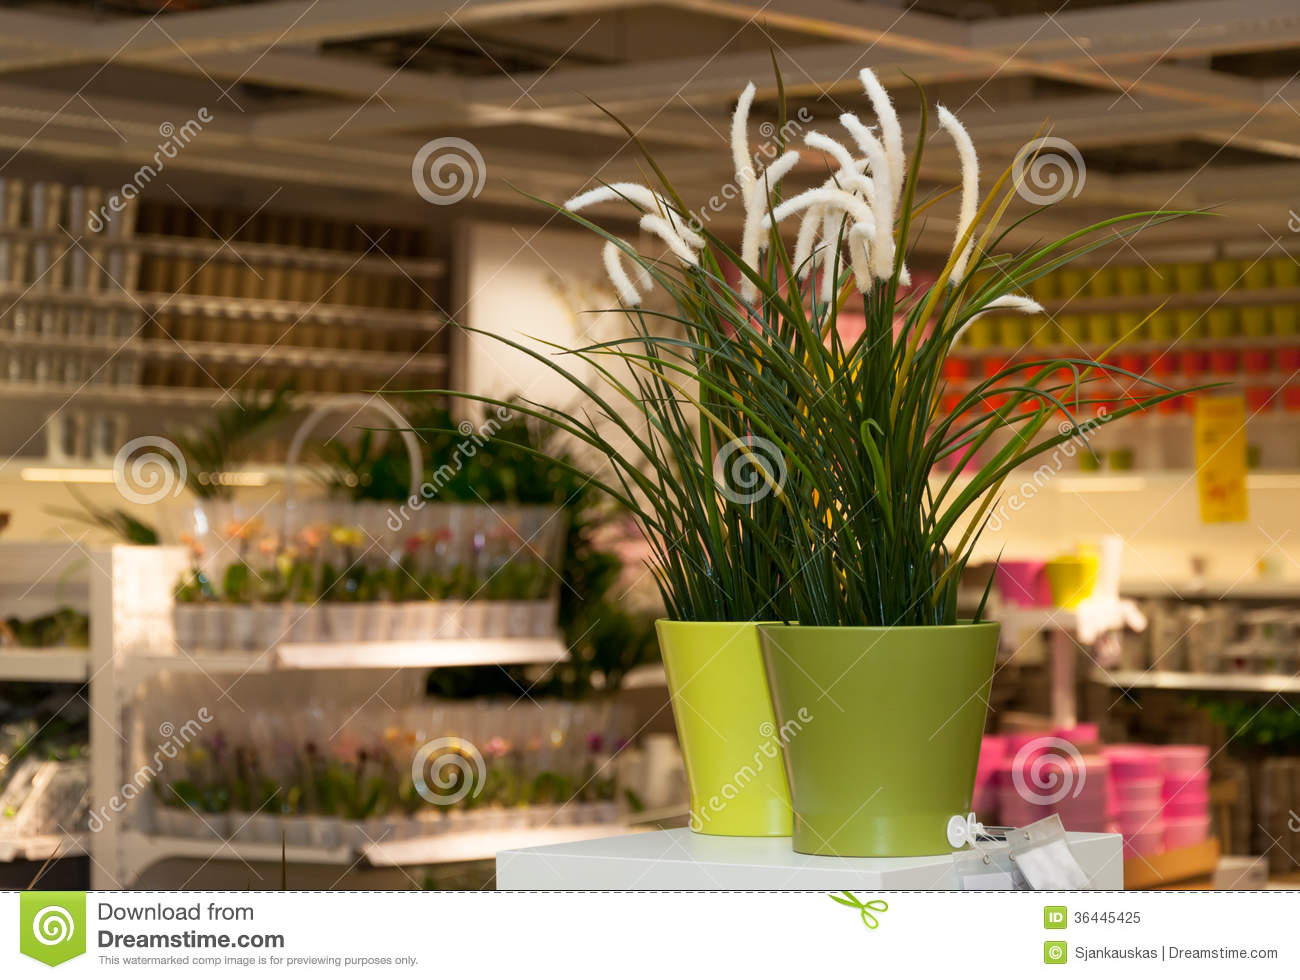 Flowers And Home Decor Shop Royalty Free Stock Photo